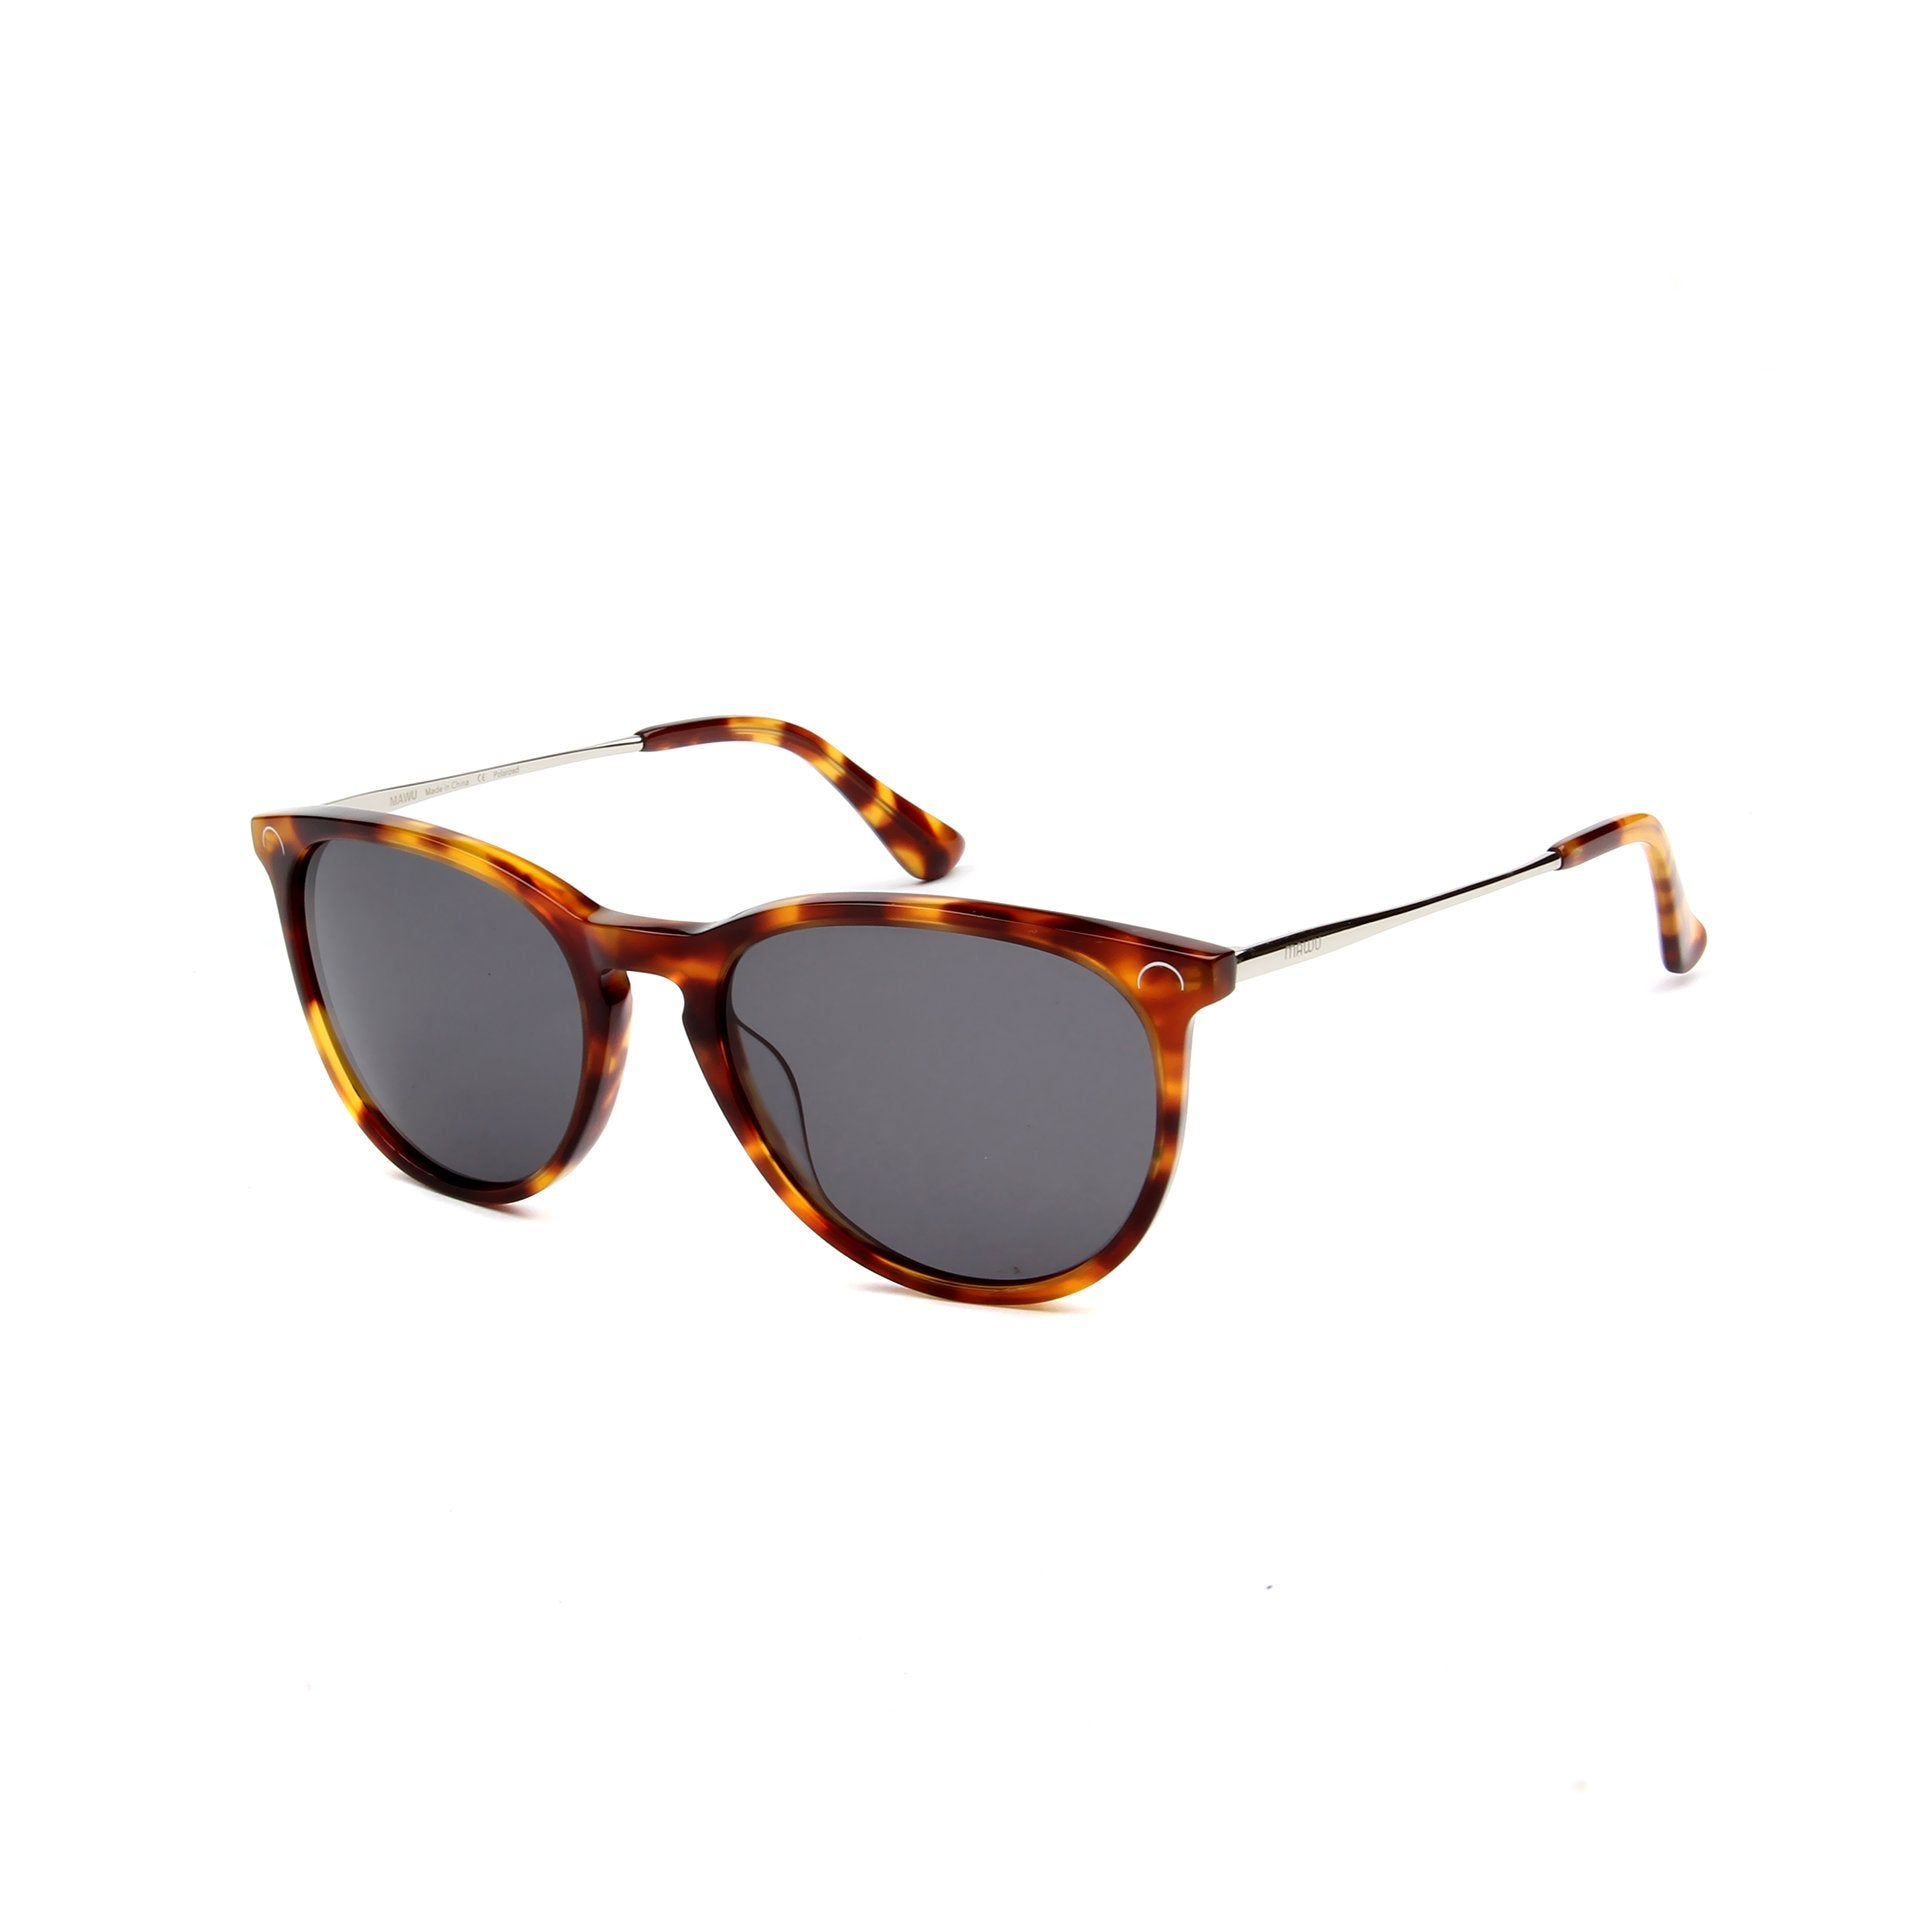 Ovea Tortoise - Angle View - Dark Grey lens - Mawu sunglasses